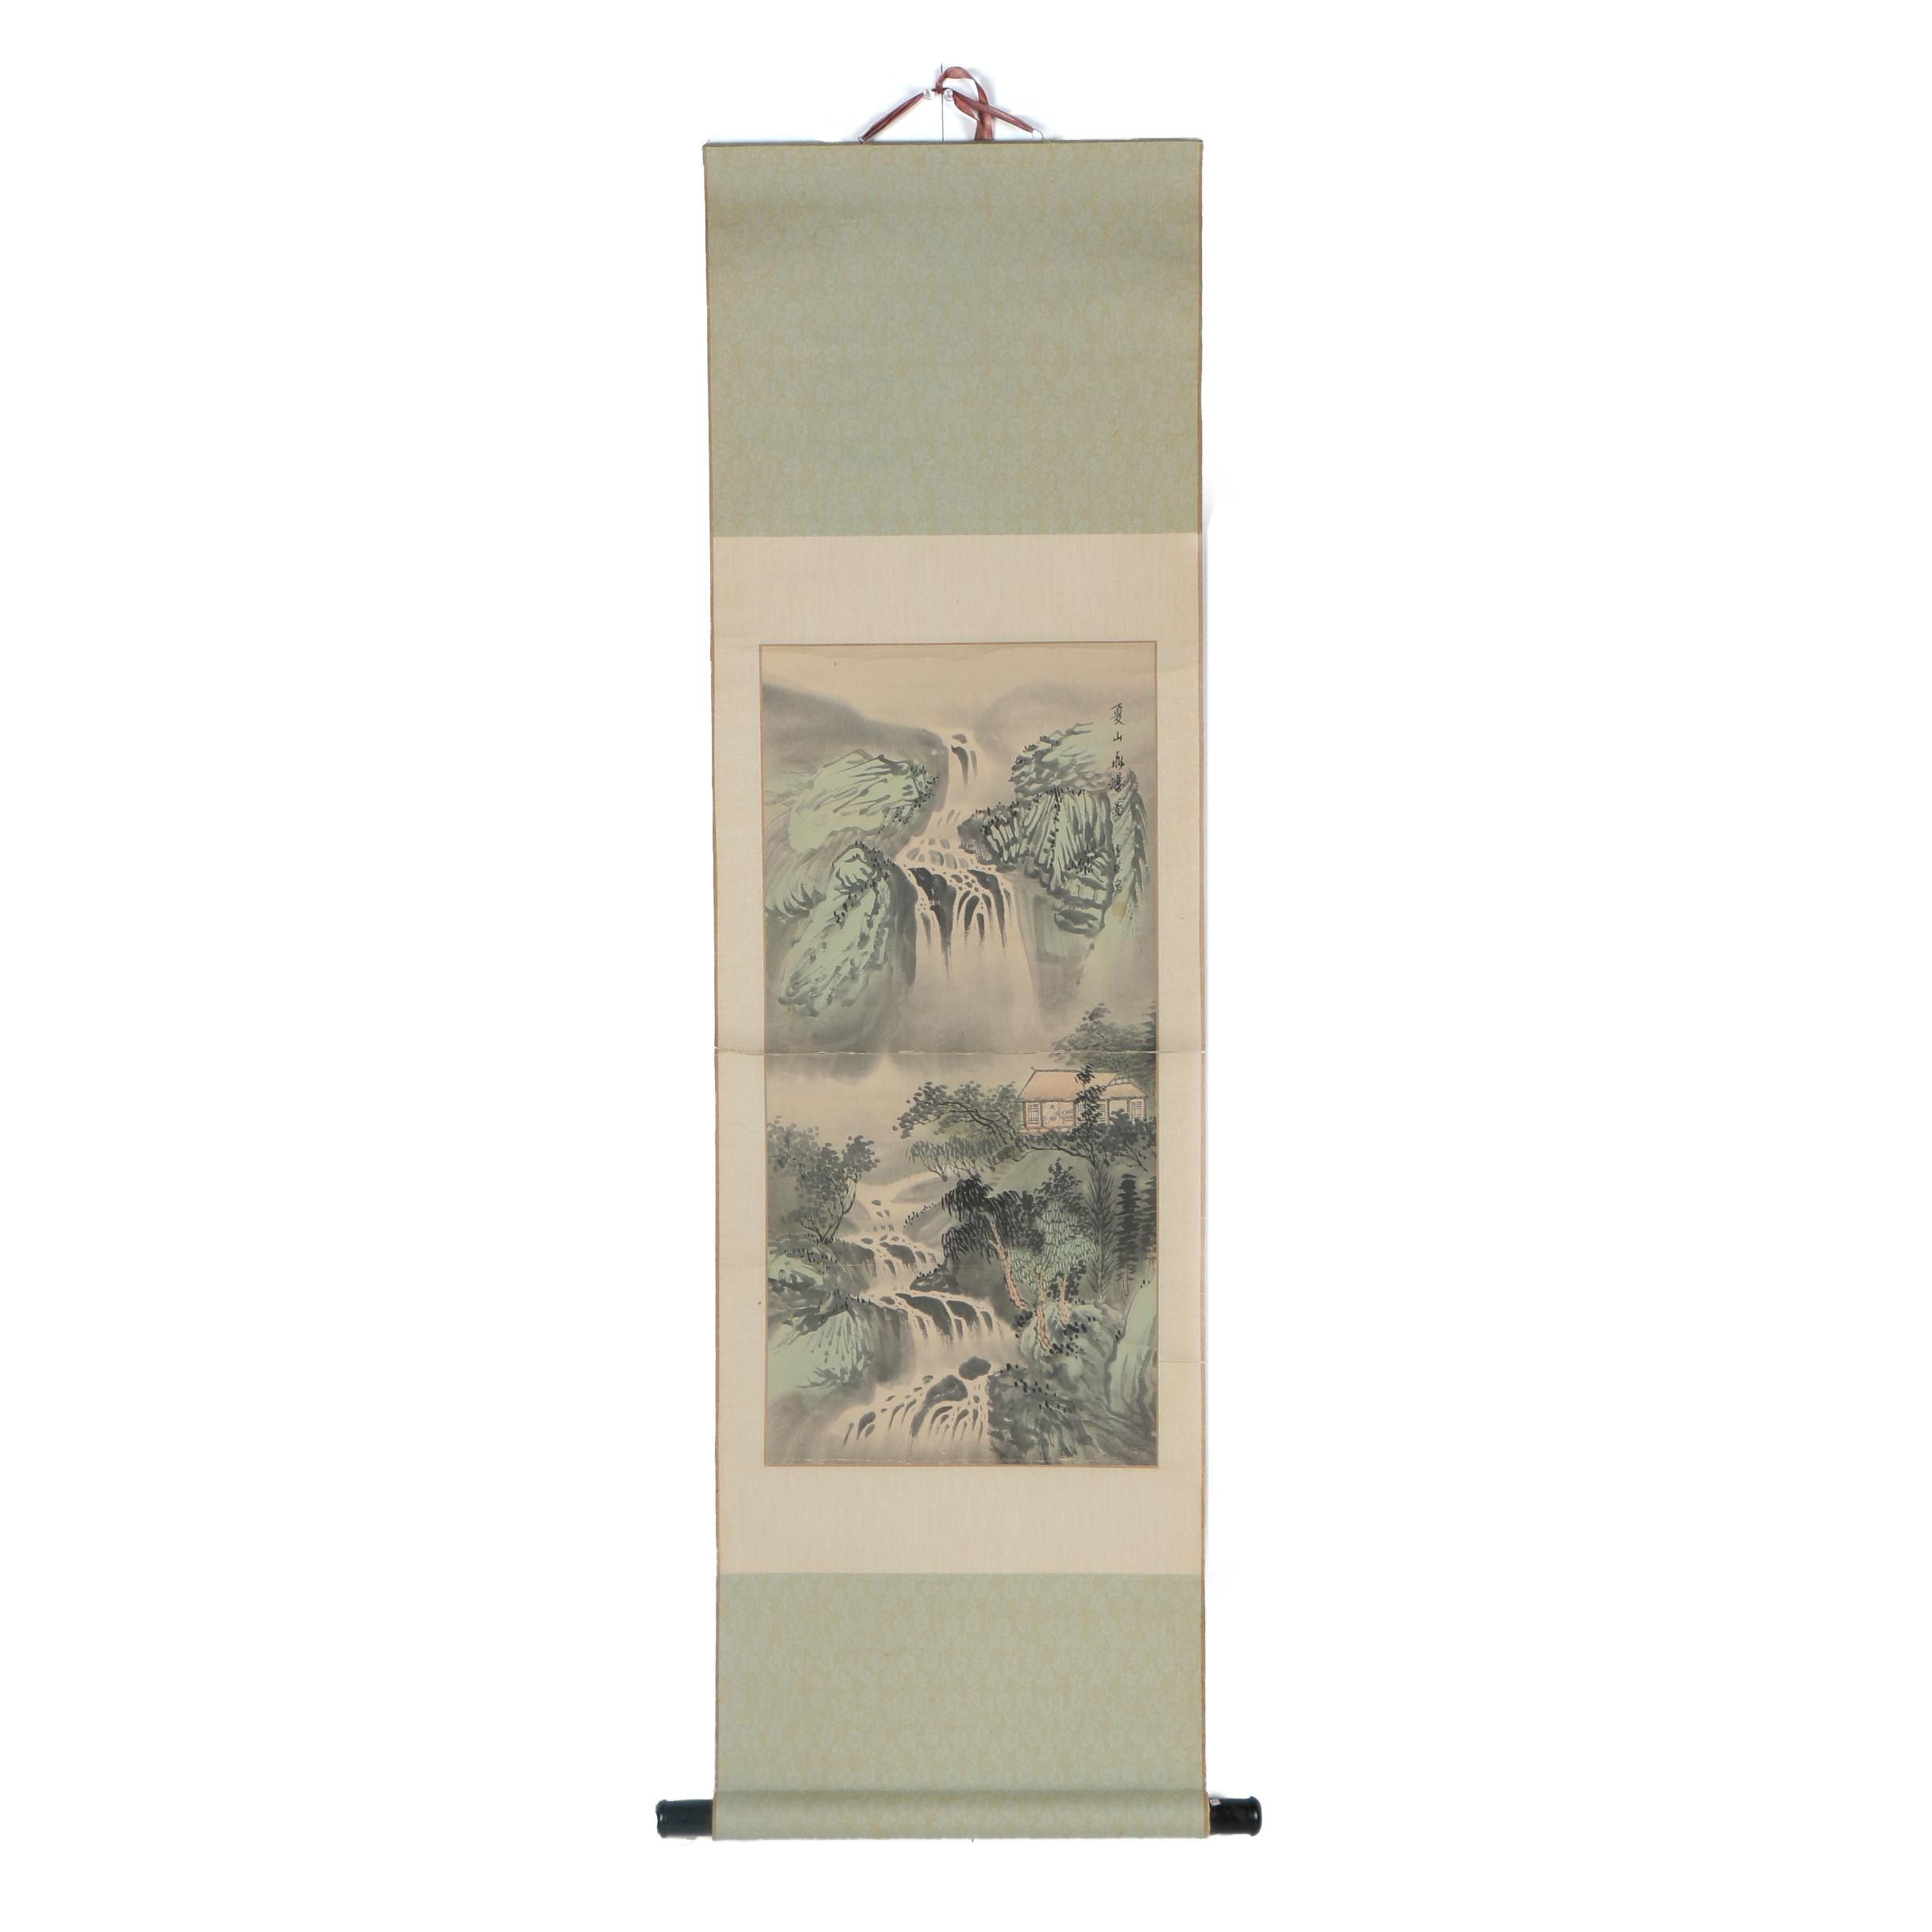 Chinese and Watercolor Painted Hanging Scroll